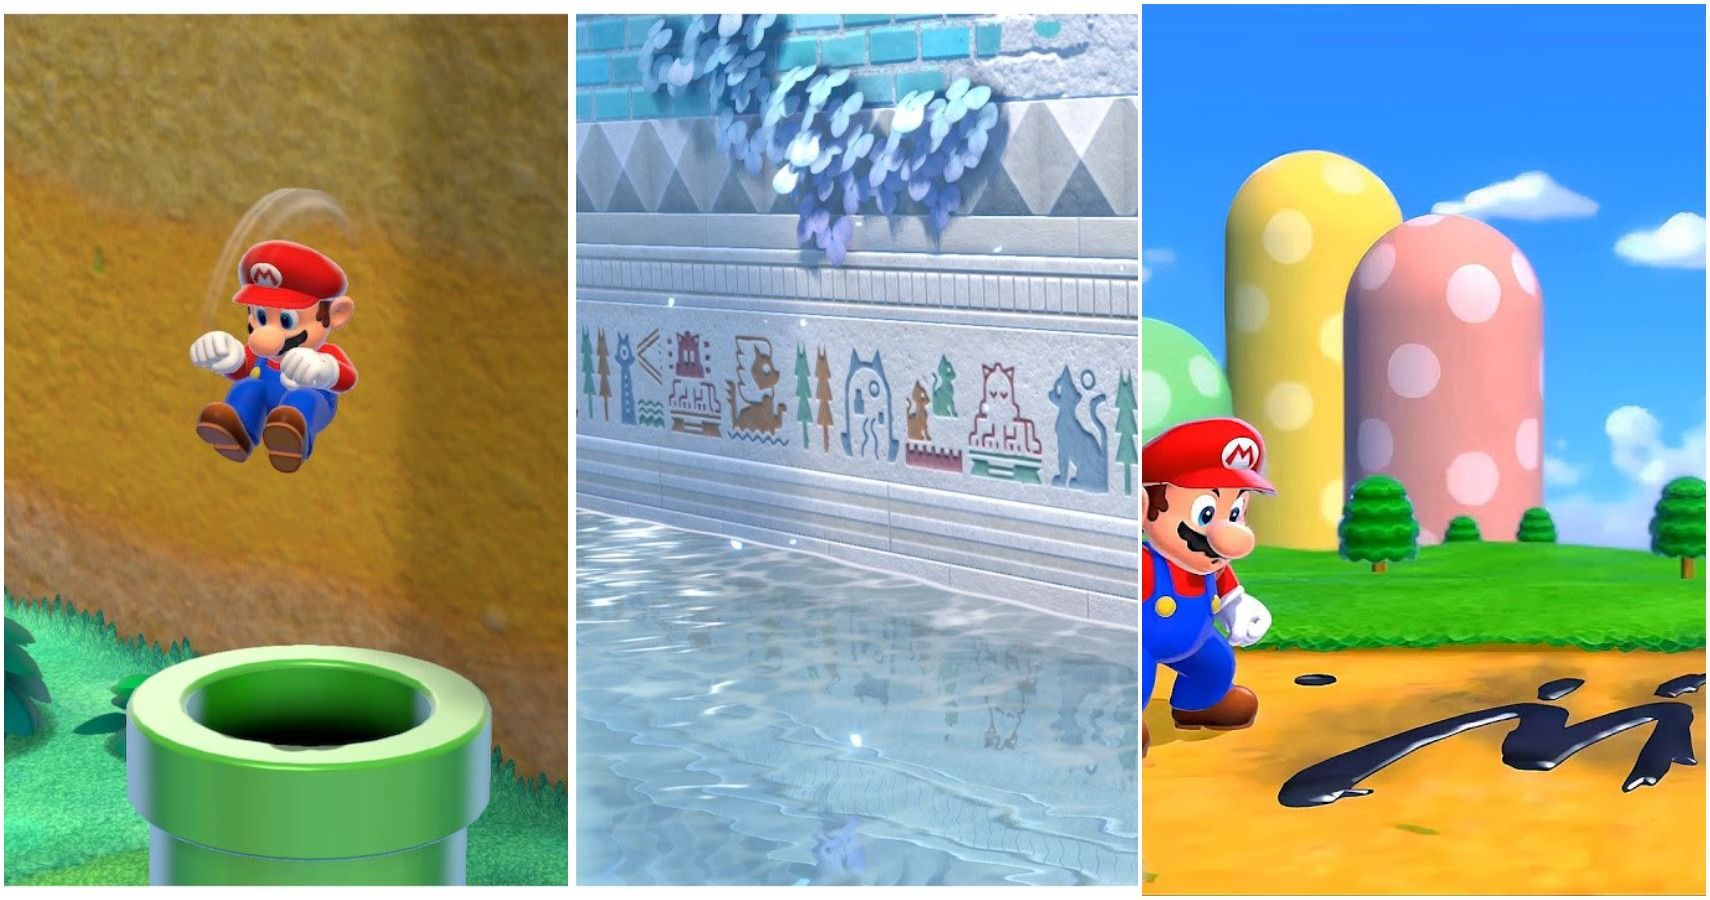 10 Hidden Details You Probably Missed In Super Mario 3D World + Bowser's Fury